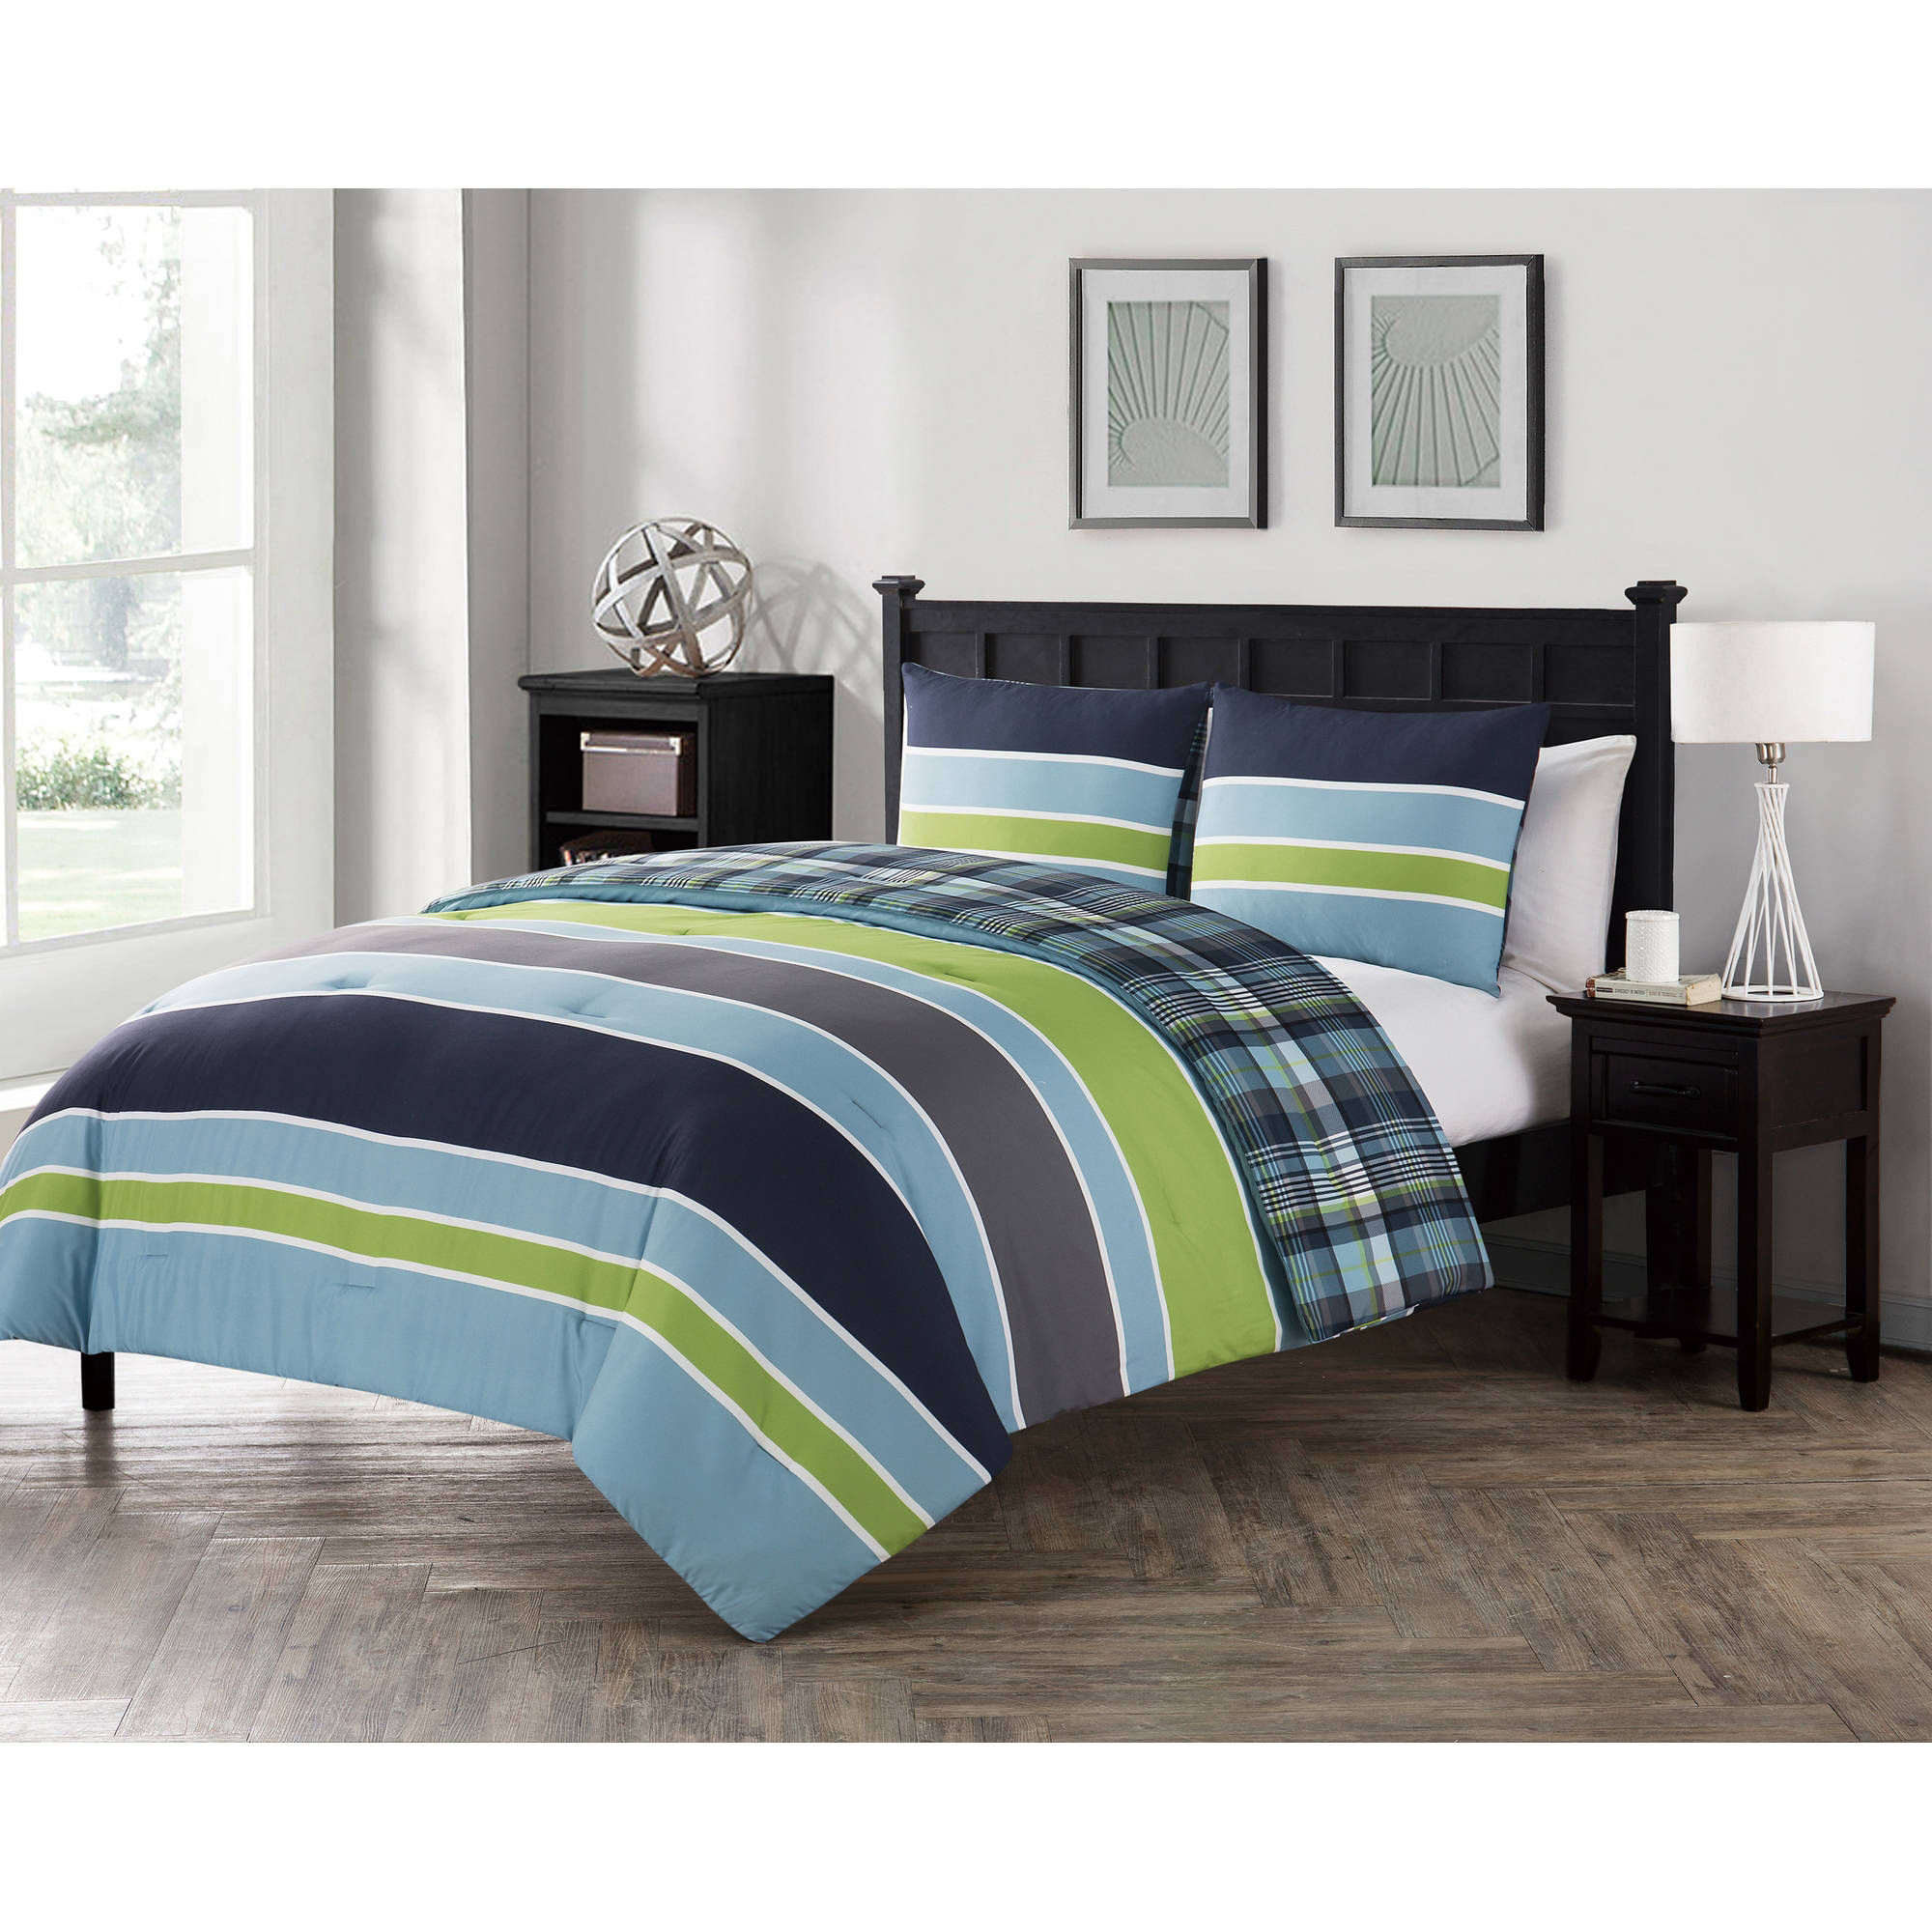 VCNY Home Multi-Color Stripe Printed 2/3 Piece Dexley Reversible Plaid Bedding Comforter Set, Shams Included